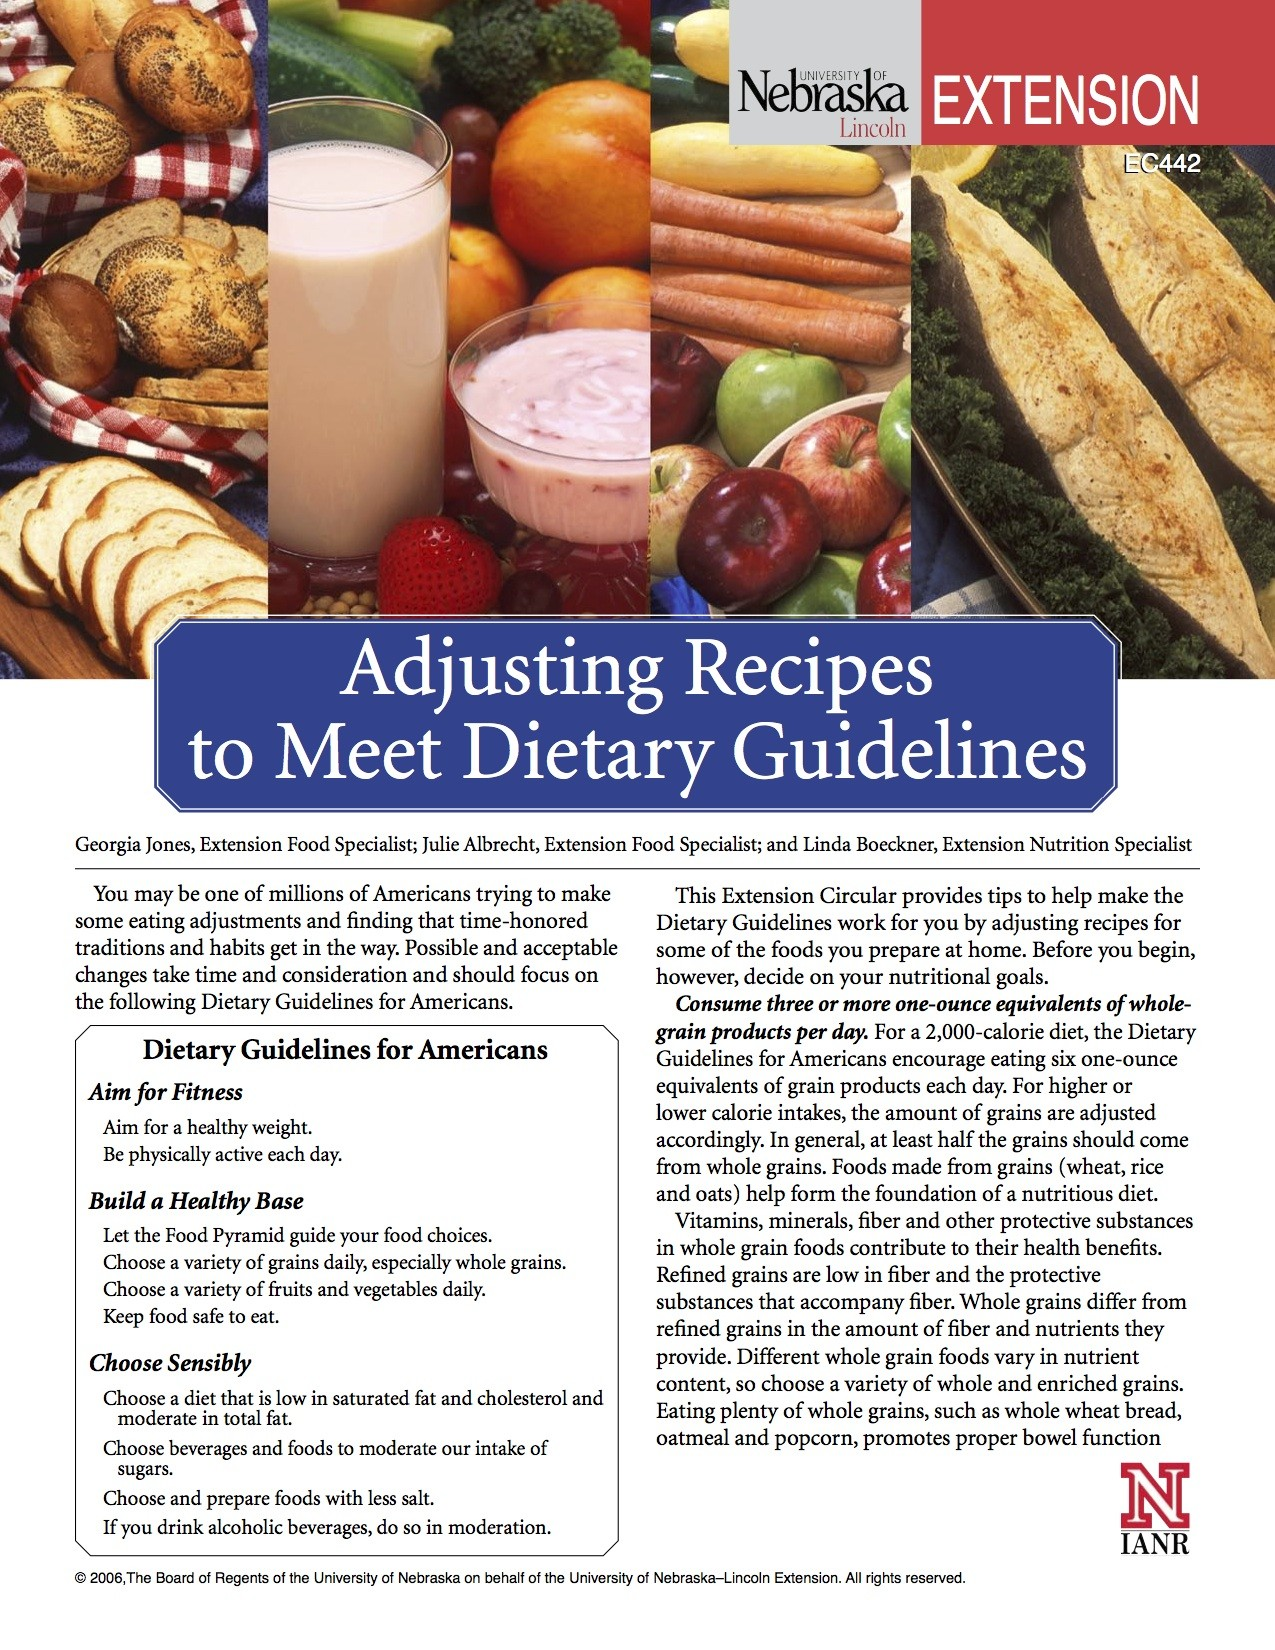 Adjusting Recipes to Meet Dietary Guidelines